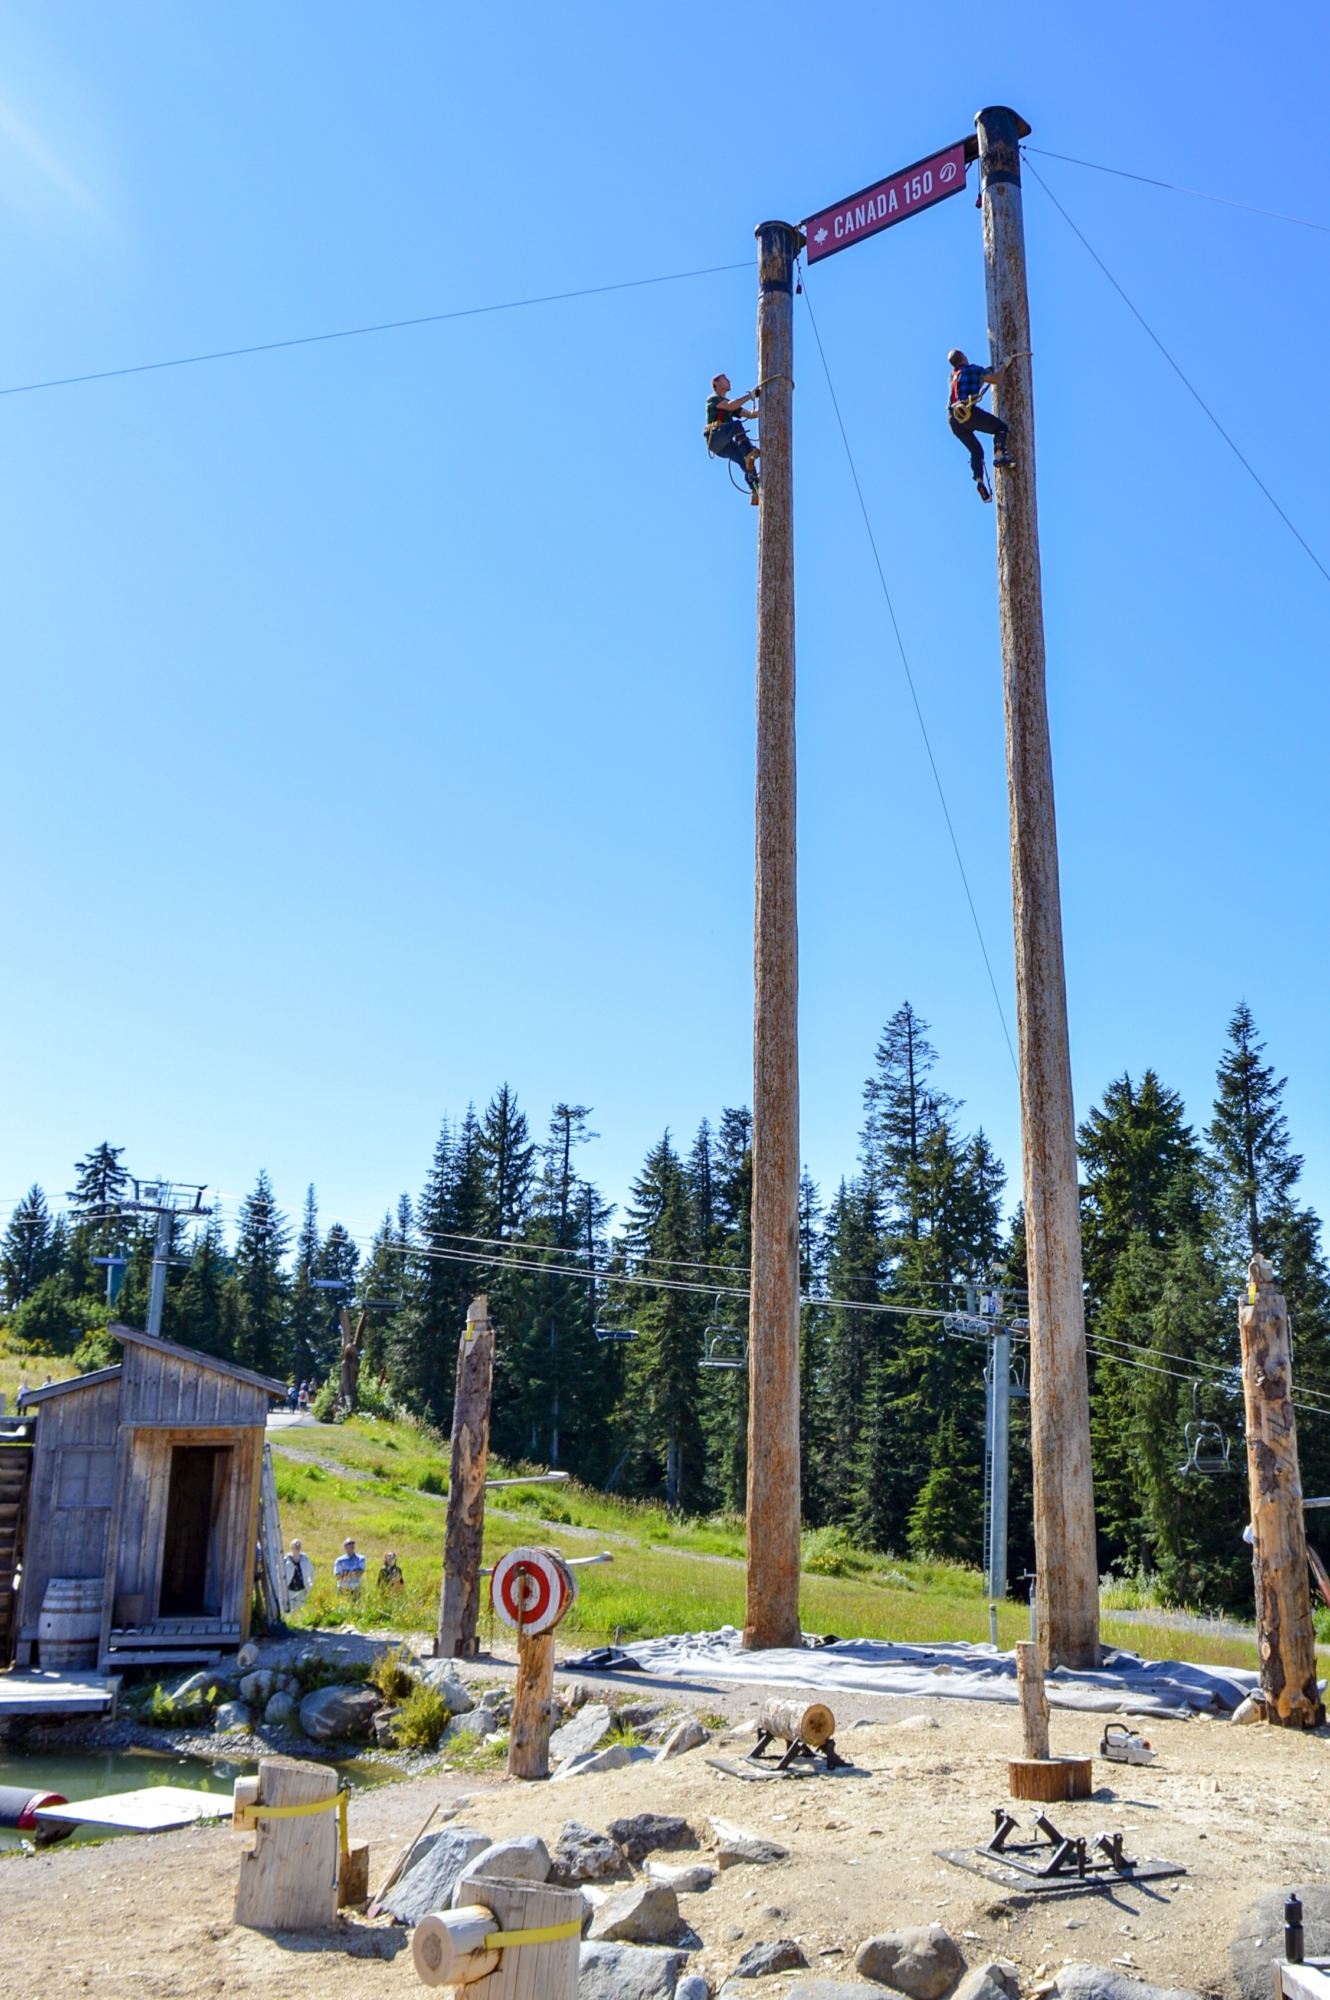 World Famous Lumberjack Show Grouse Mountain Vancouver